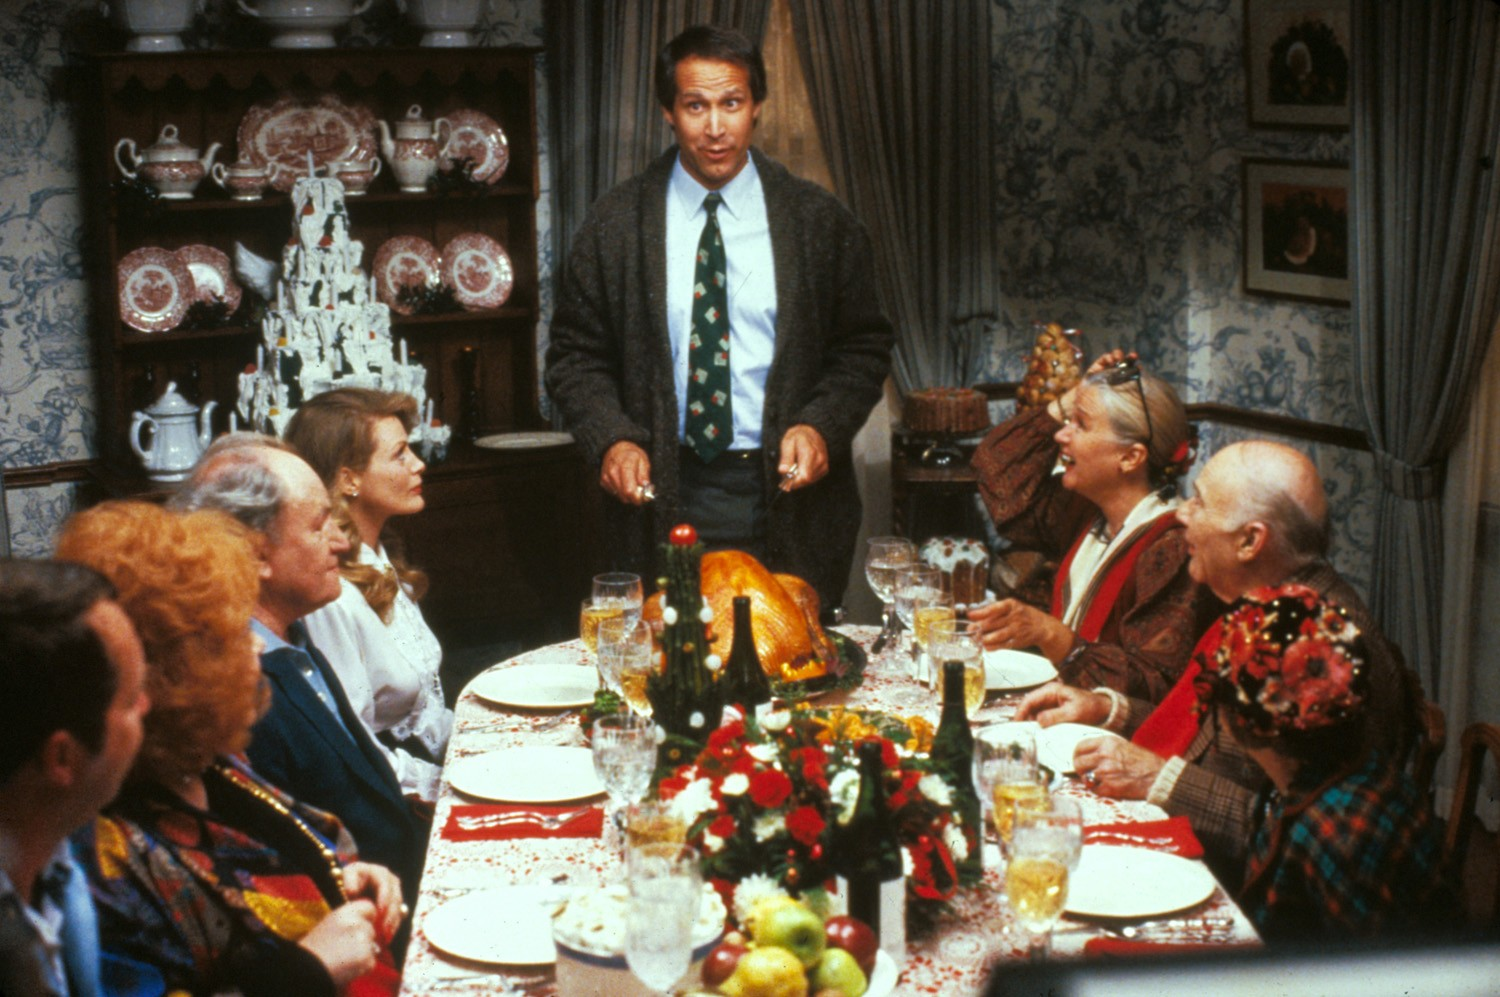 National Lampoon's Christmas Vacation Pics, Movie Collection